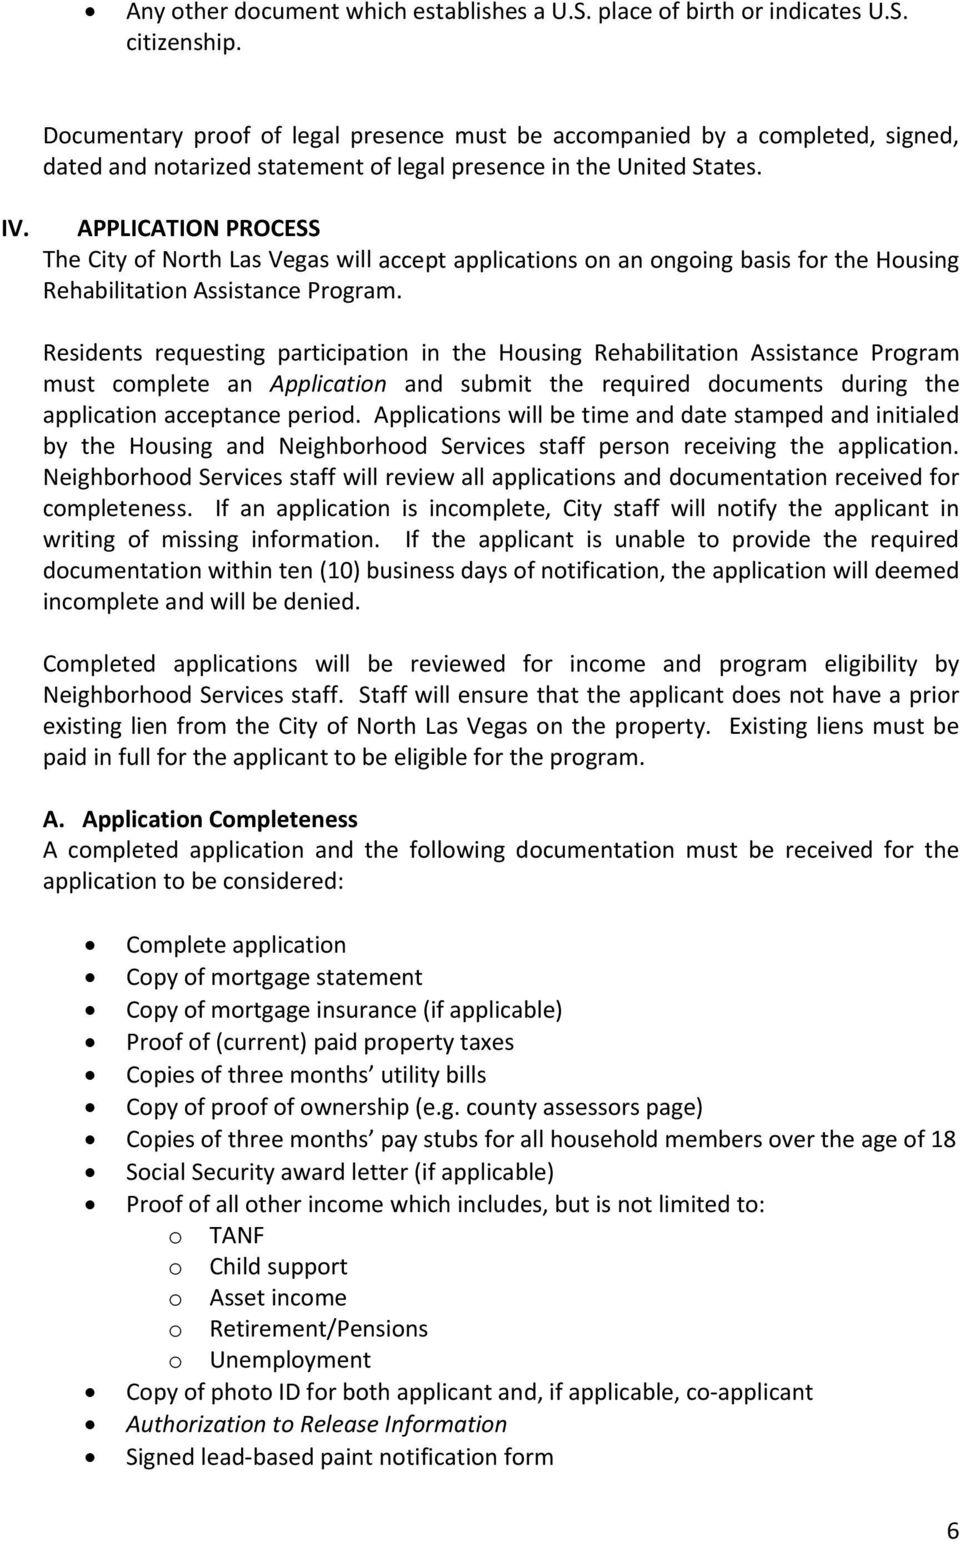 APPLICATION PROCESS The City of North Las Vegas will accept applications on an ongoing basis for the Housing Rehabilitation Assistance Program.